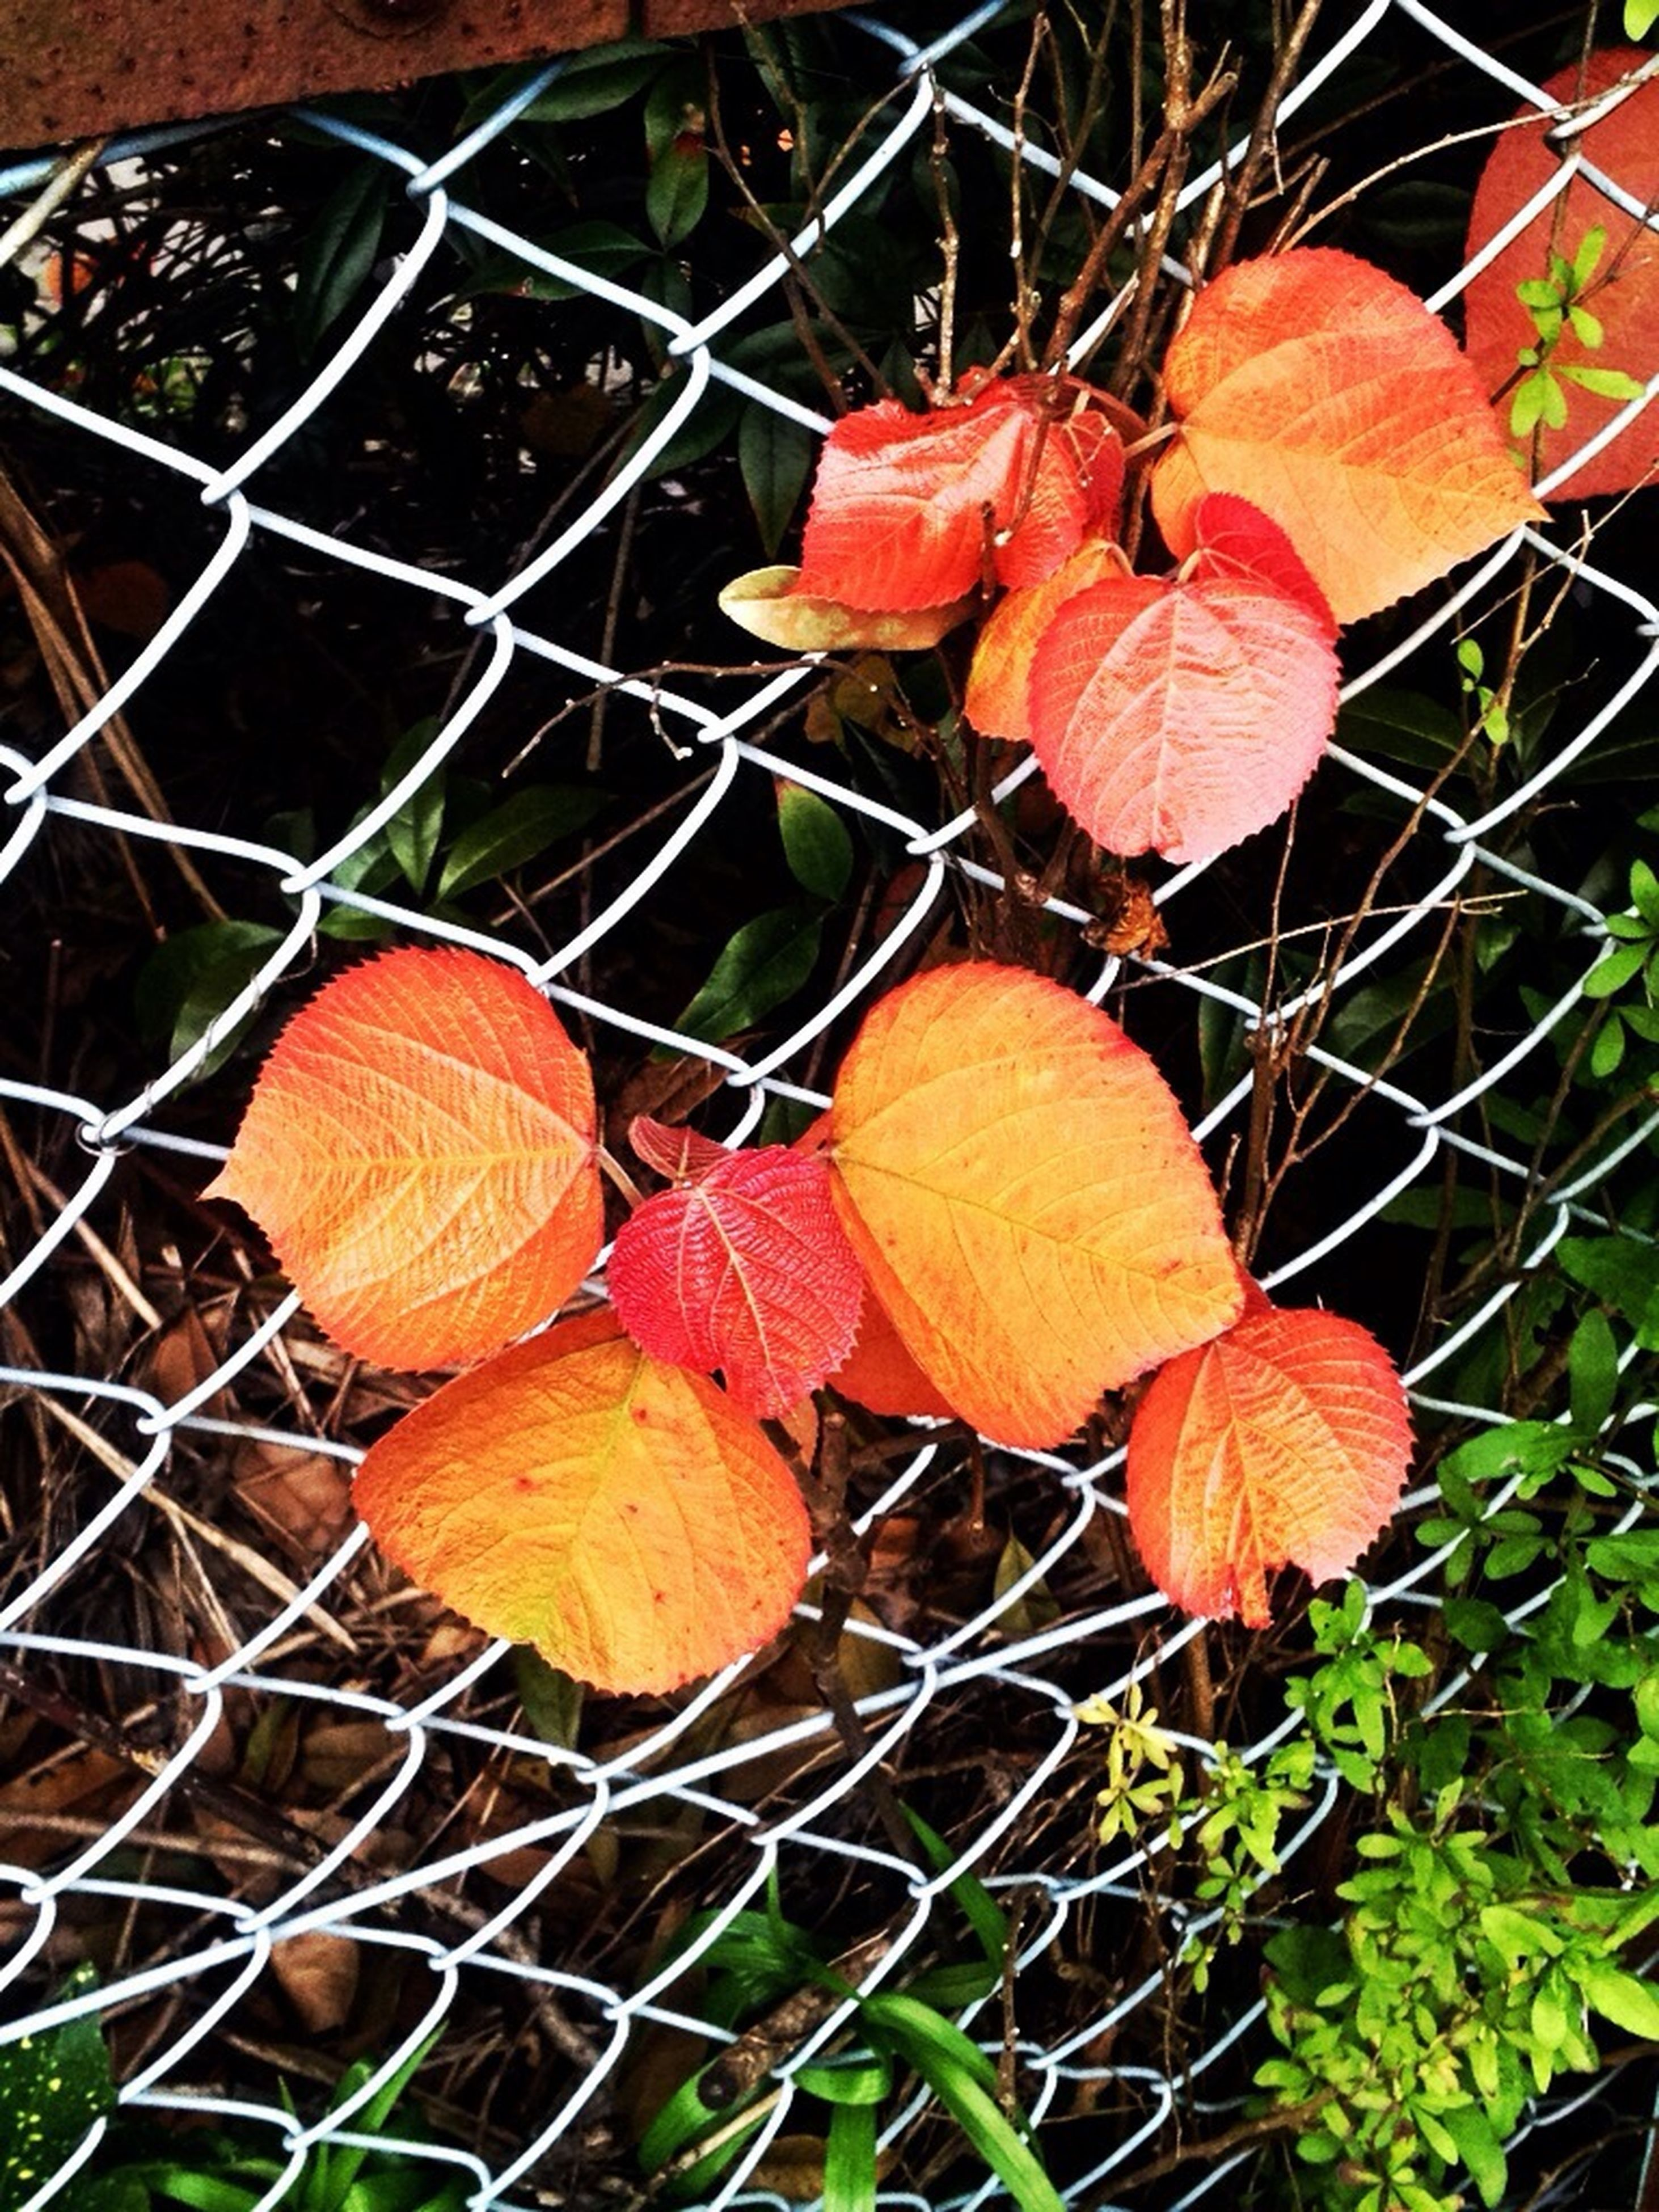 autumn, leaf, change, season, dry, close-up, orange color, red, chainlink fence, leaves, plant, high angle view, nature, leaf vein, focus on foreground, no people, day, outdoors, metal, fragility